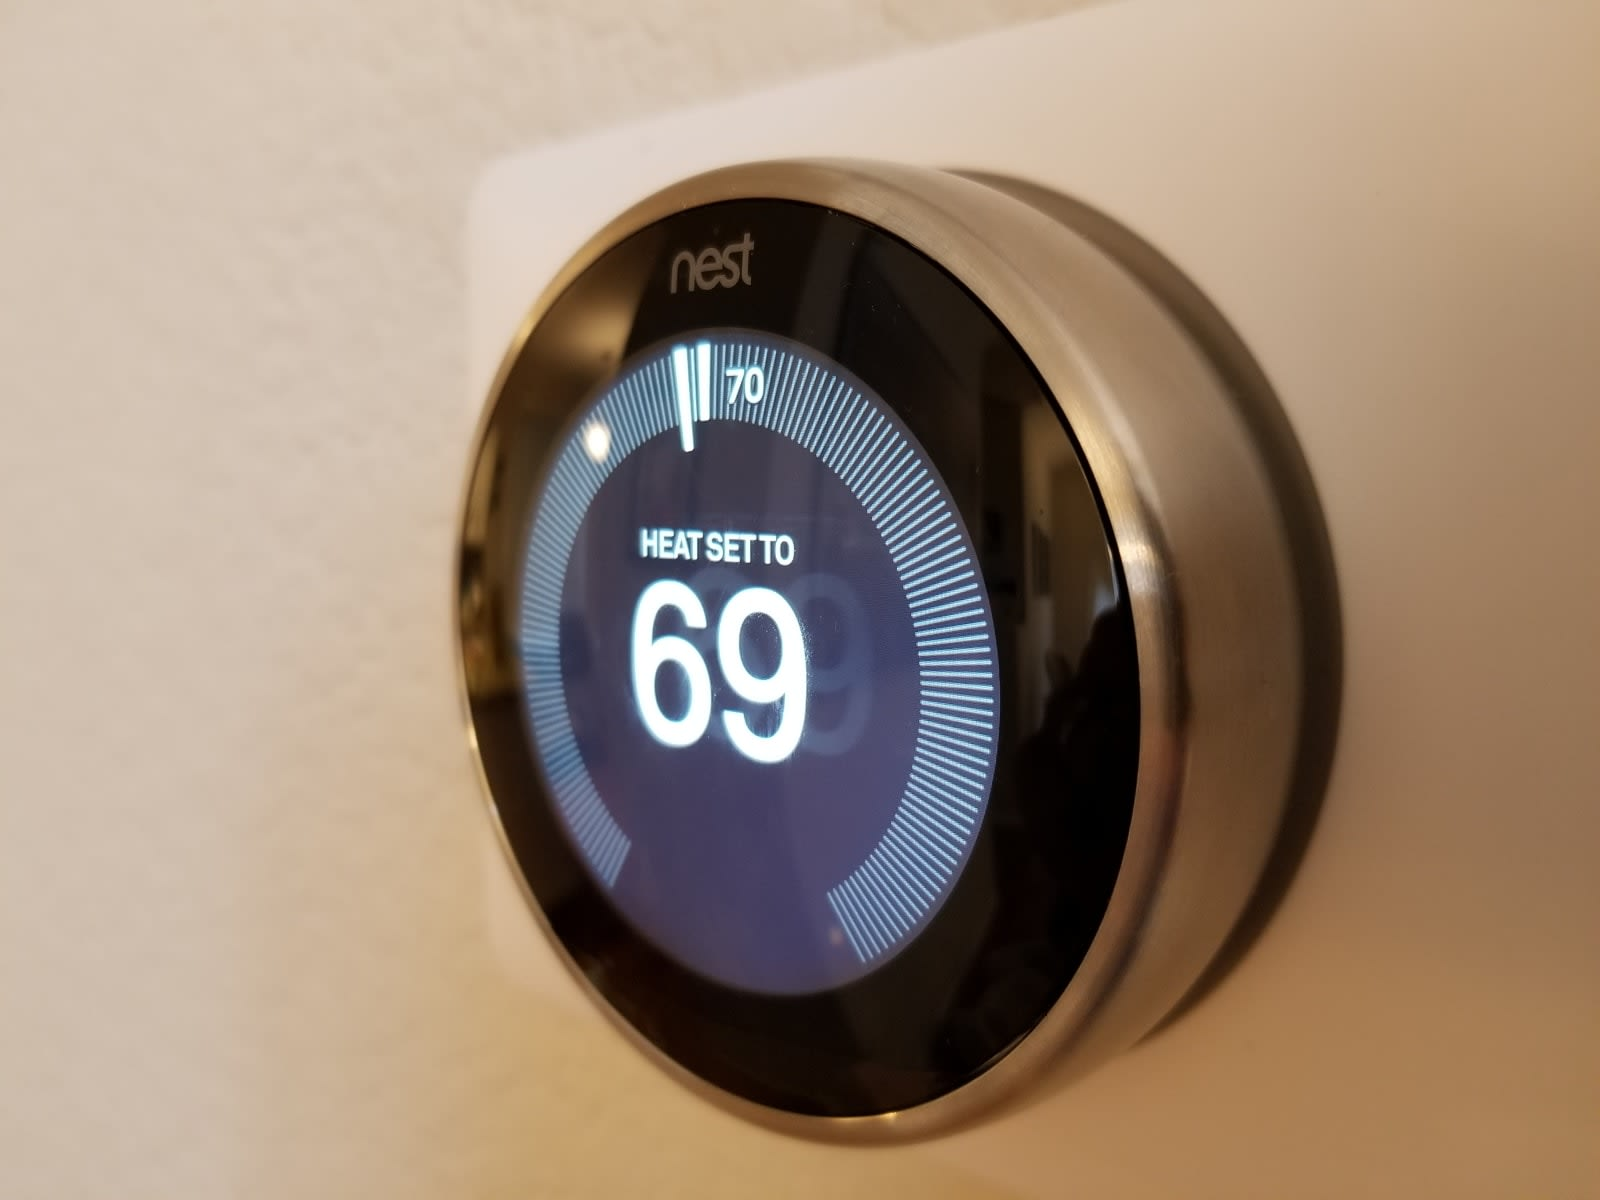 The End Of Works With Nest Could Be Trouble For Smart Homes